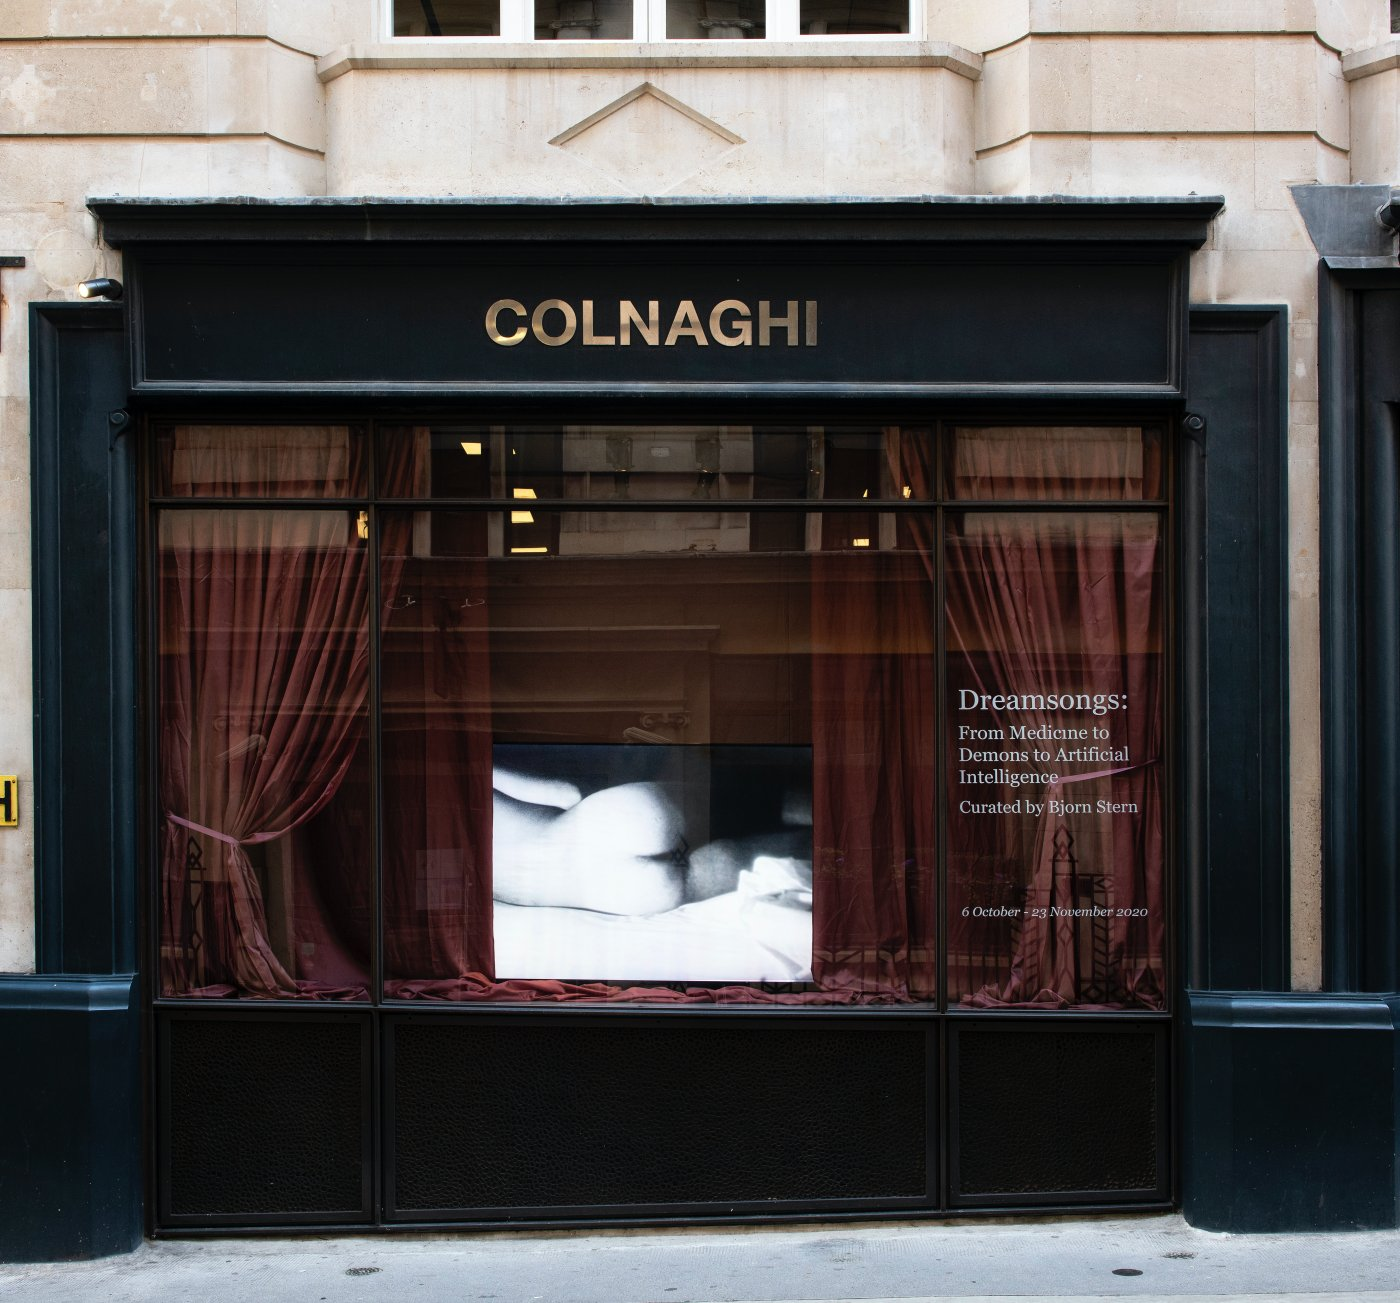 Colnaghi Dreamsongs 4